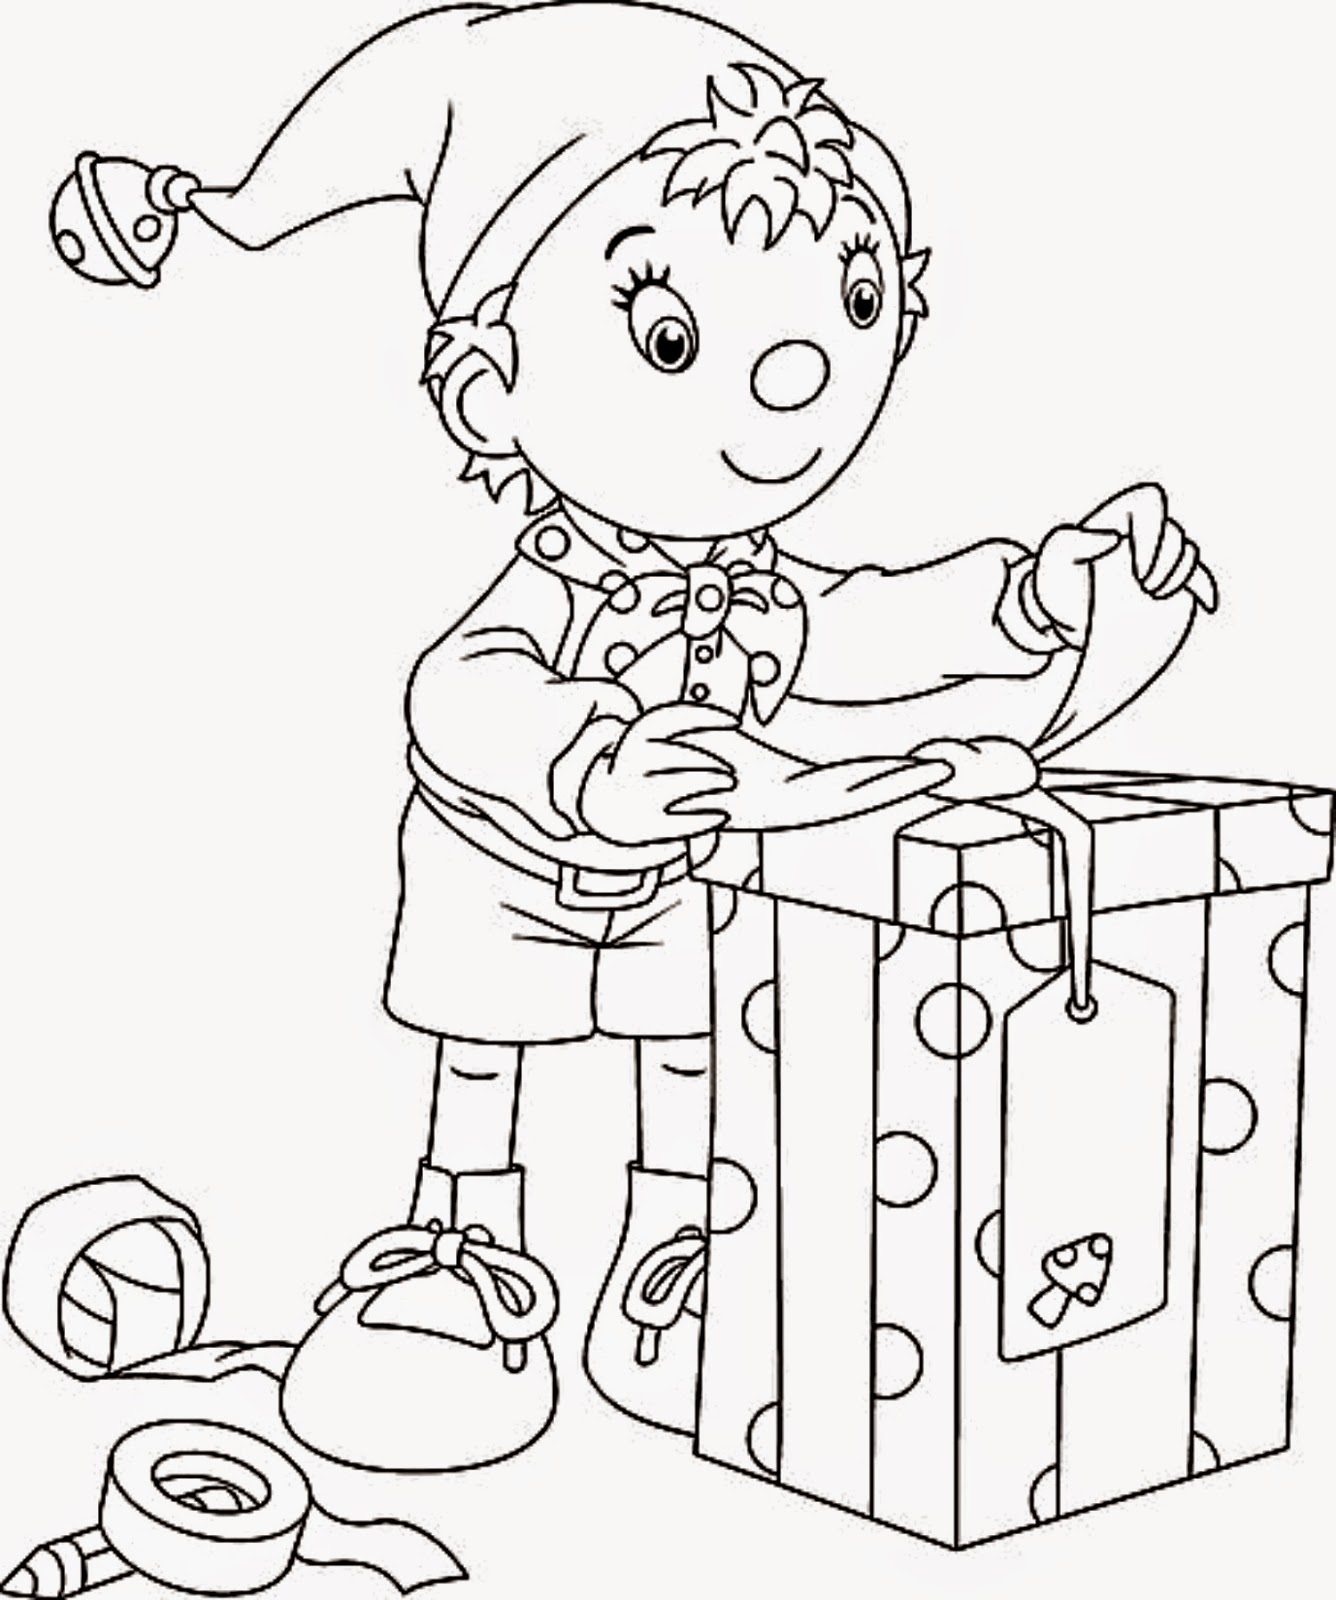 Coloring pages november 2014 for Christmas printables coloring pages